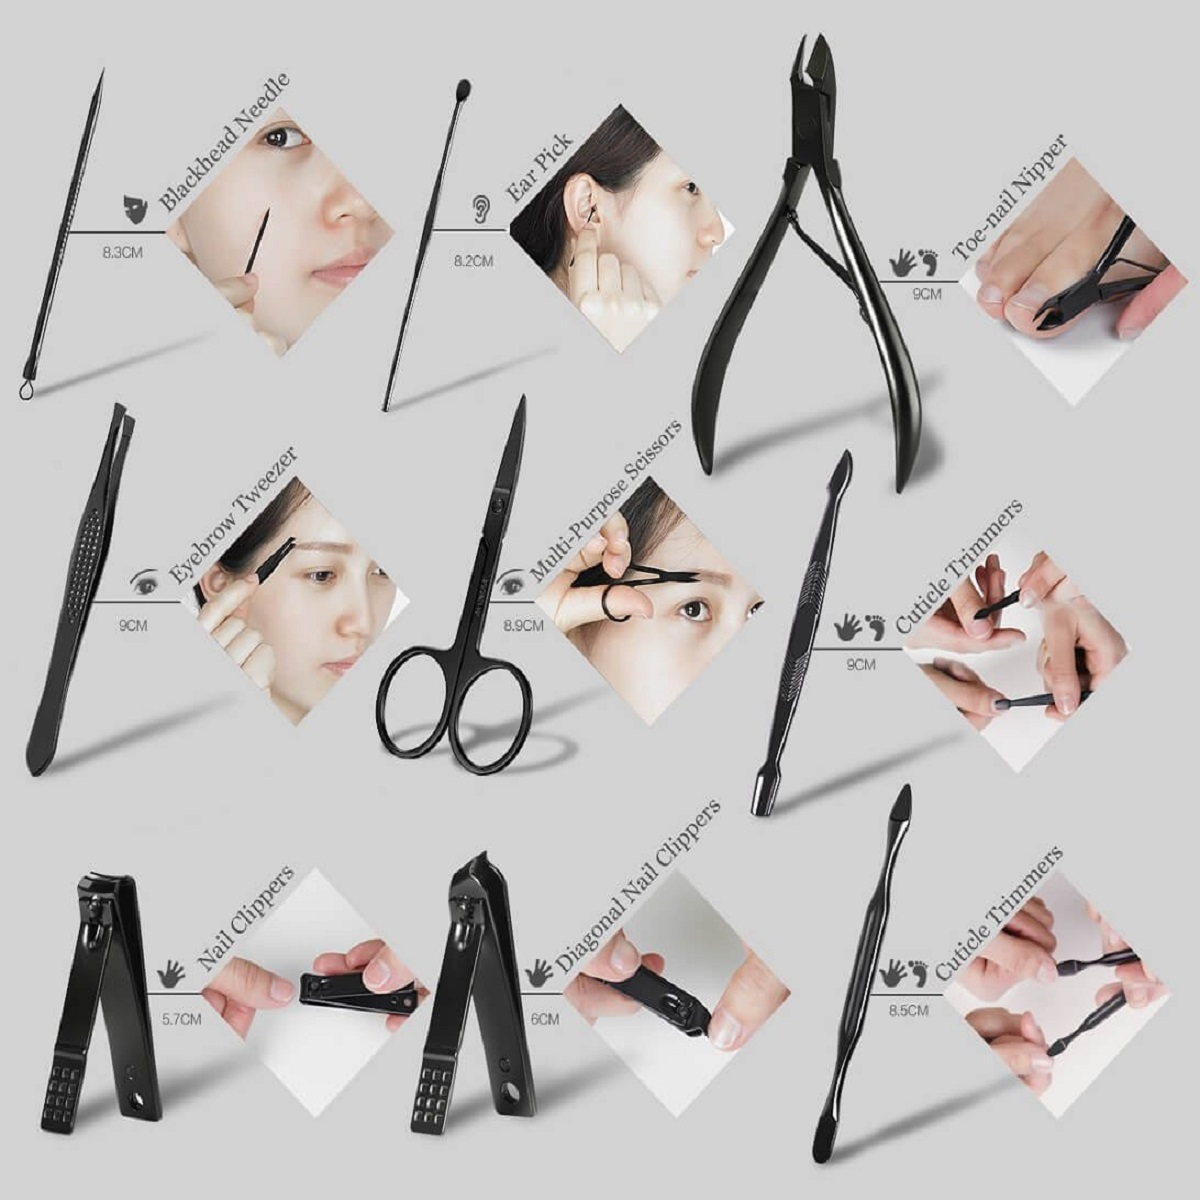 Y.F.M® 16pcs Nail Clipper Manicure Pedicure Set